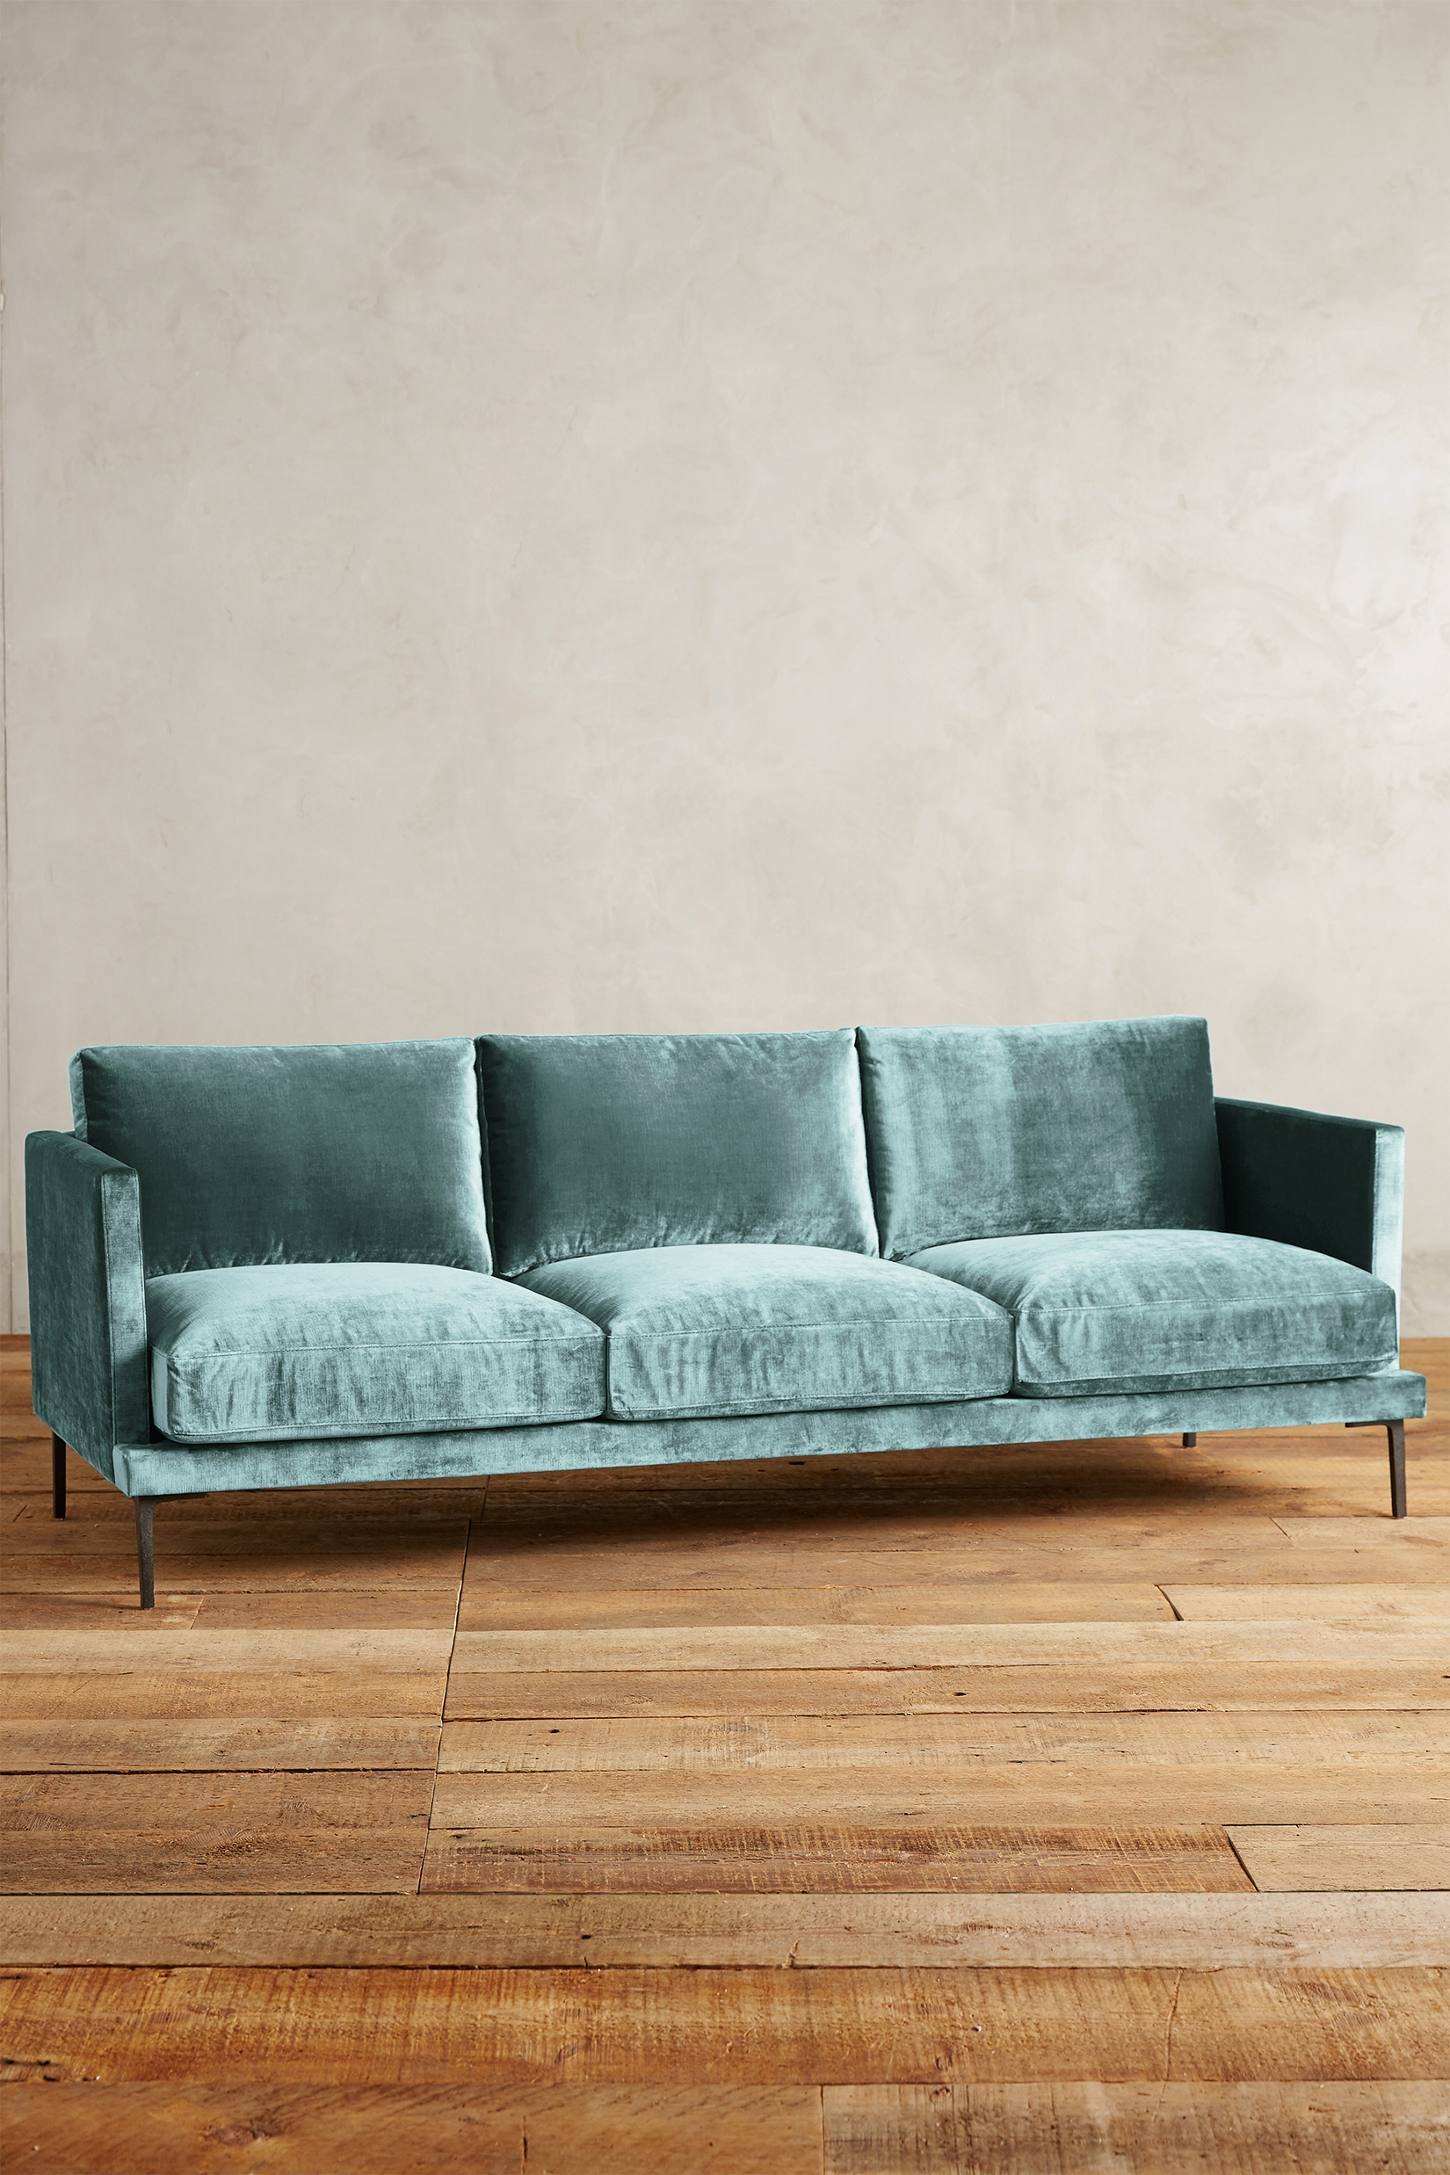 sectional vs sofa bernie and phyls chaise vs. couch: the great seating debate